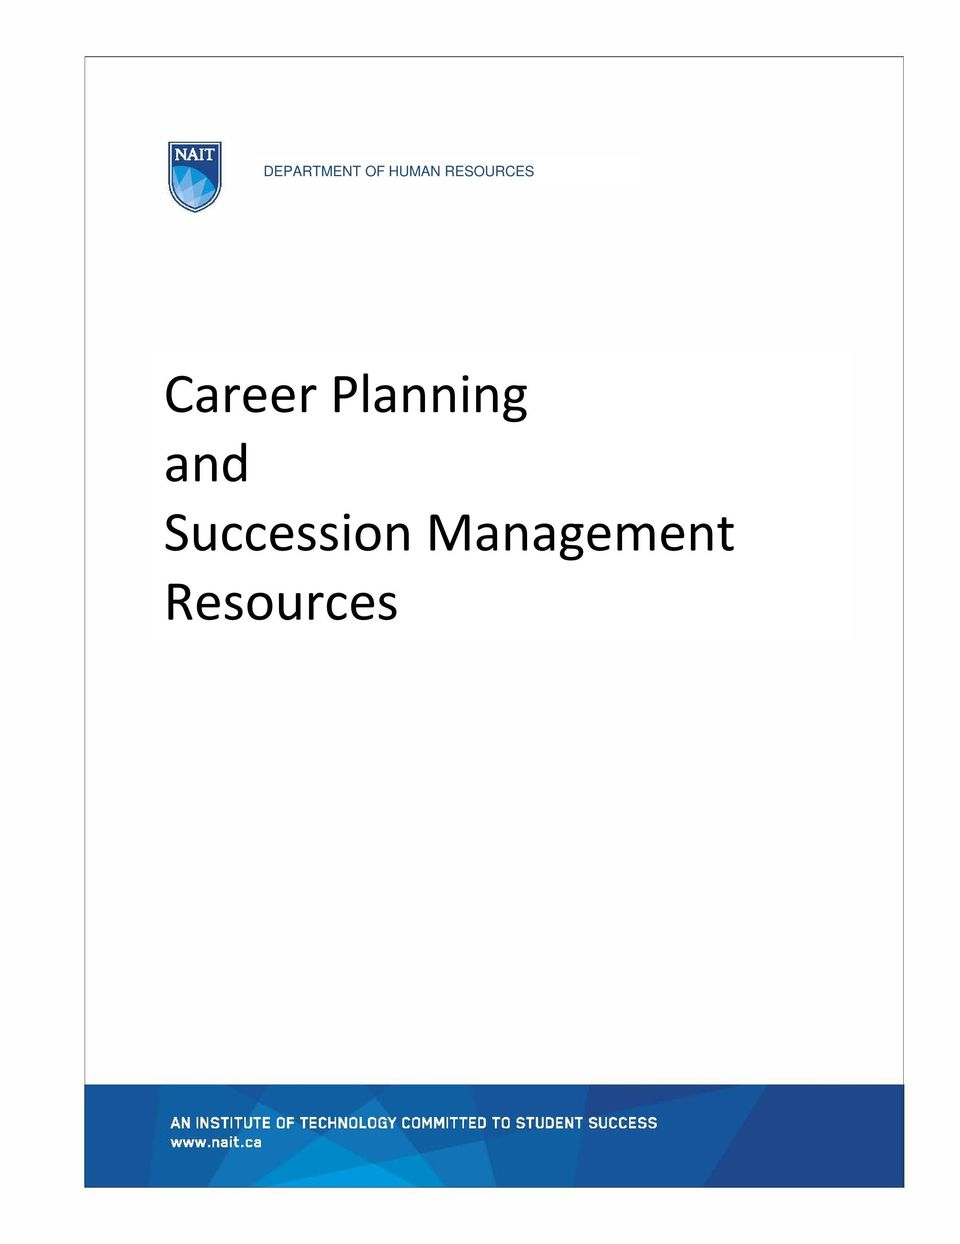 Career Planning and